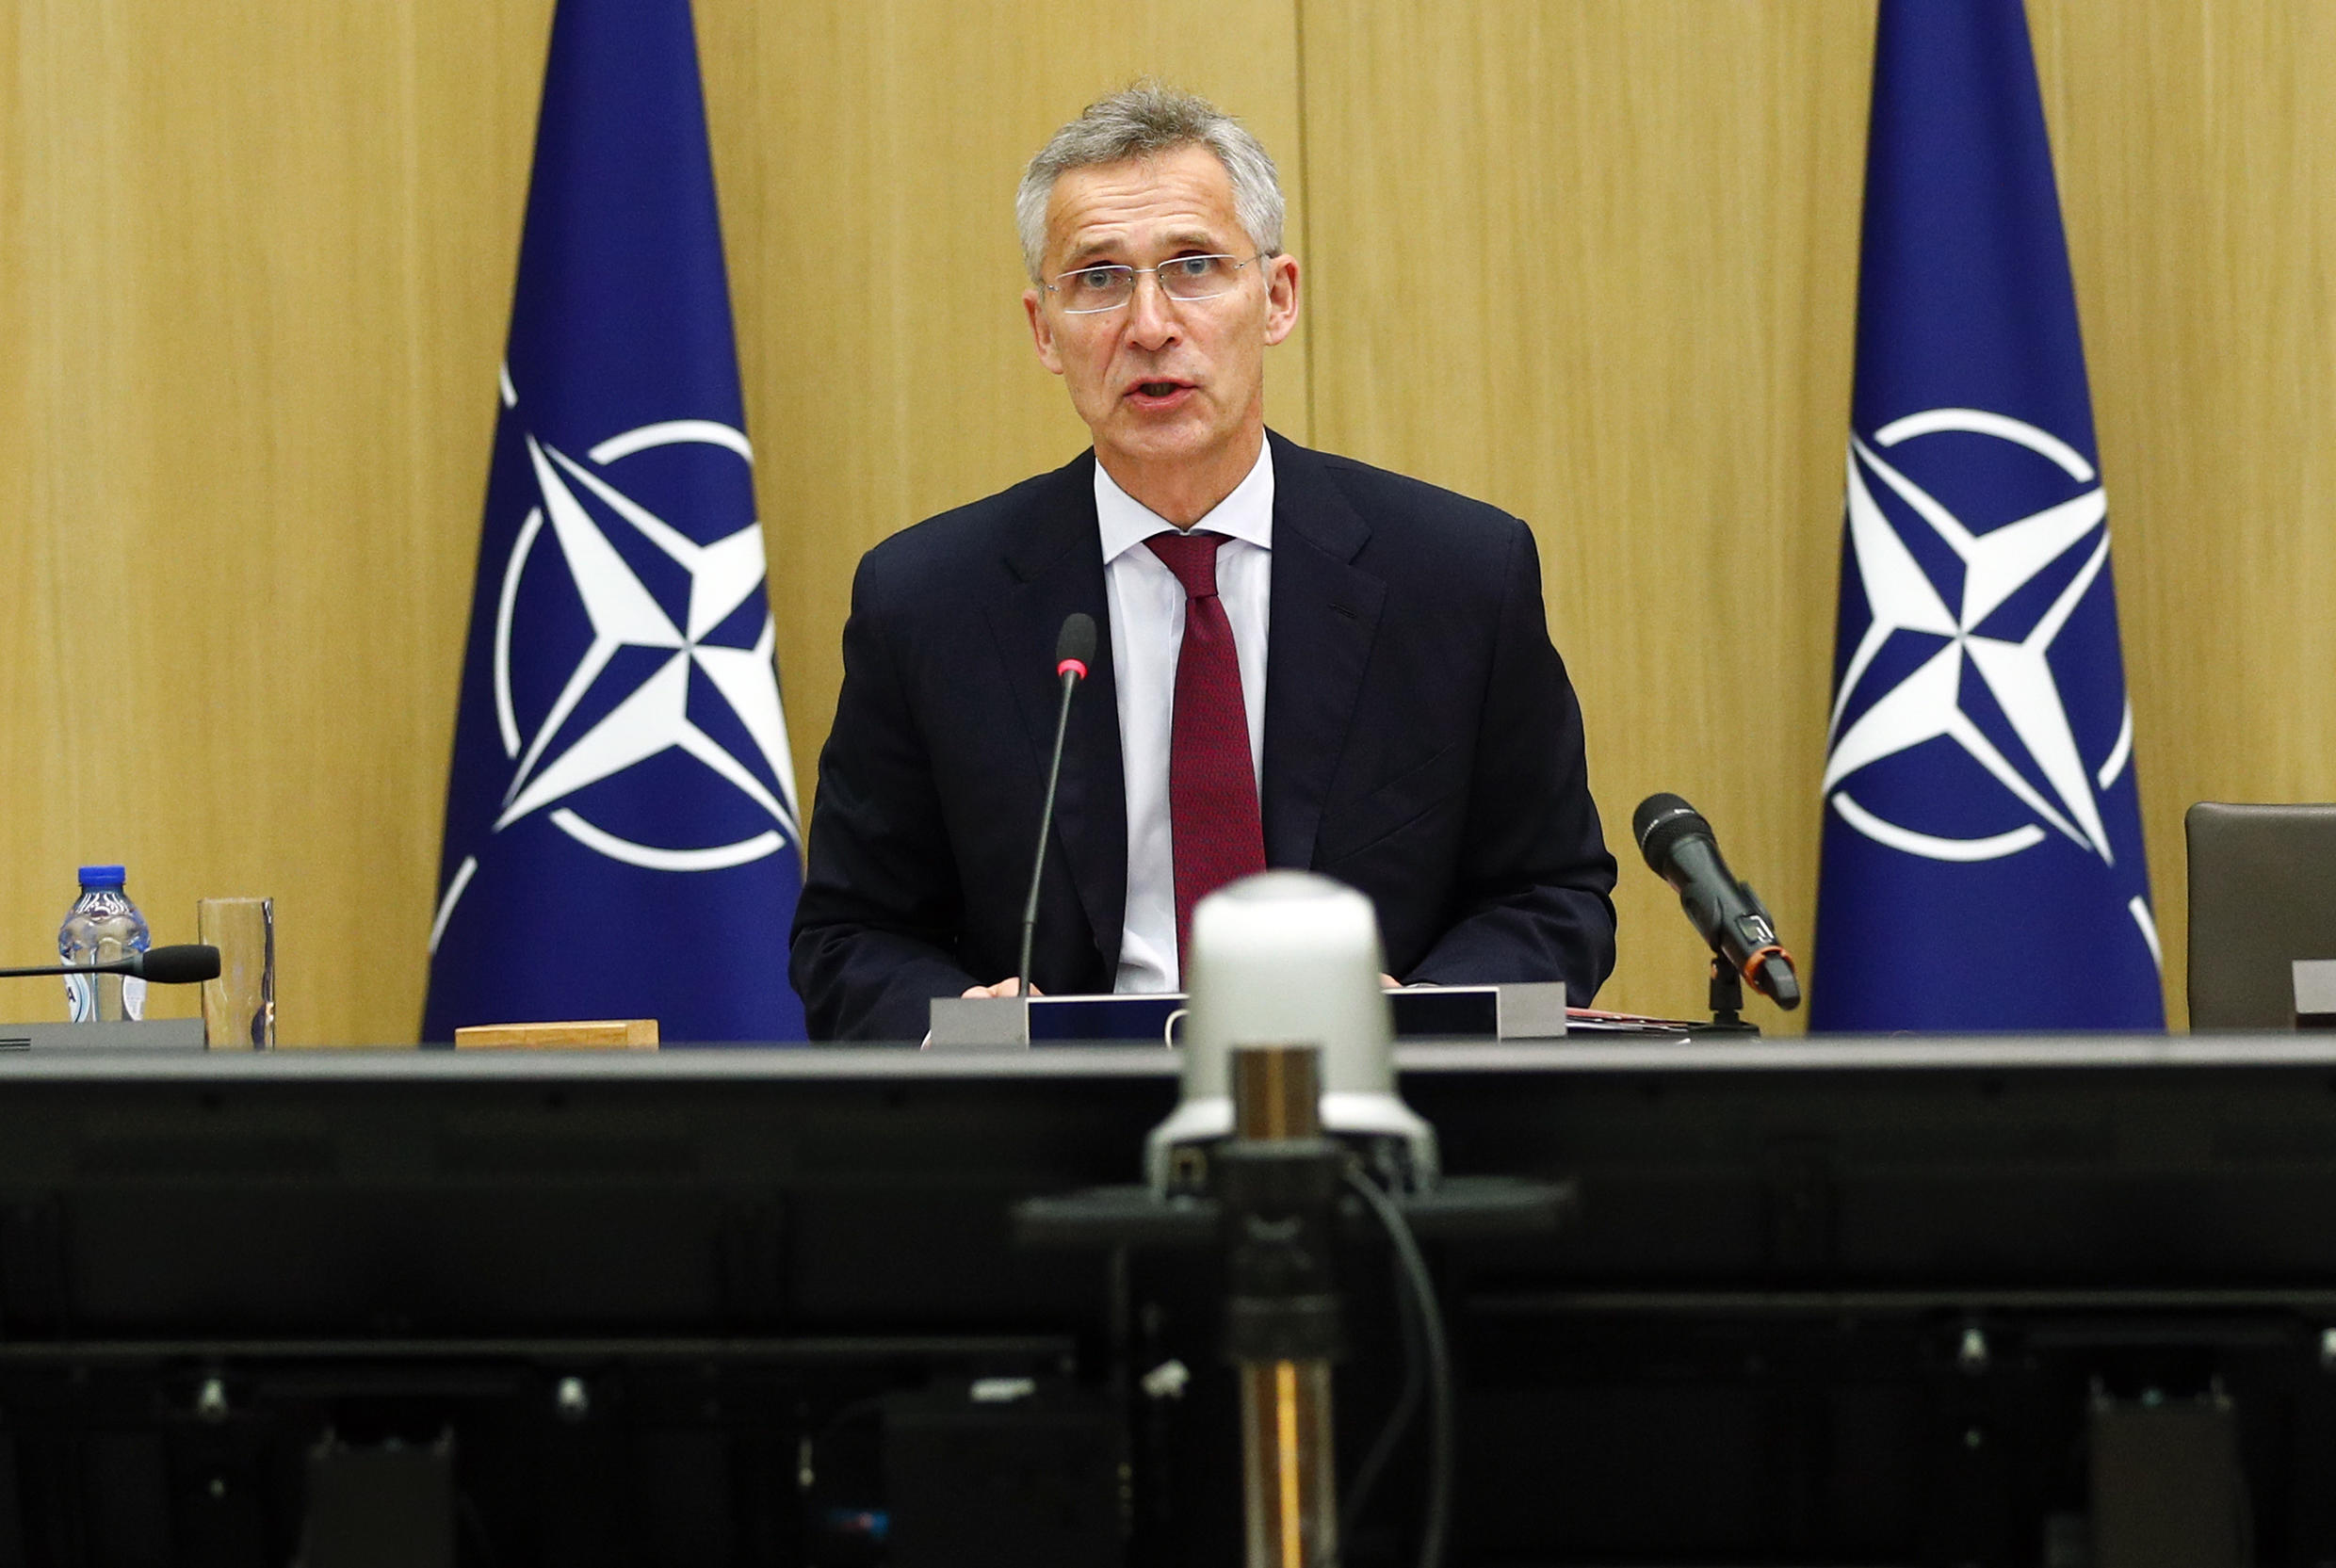 NATO Secretary-General Jens Stoltenberg on JUne 18, 2020 said the alliance would investigate French claims against  Turkey's actions in the Mediterranean.